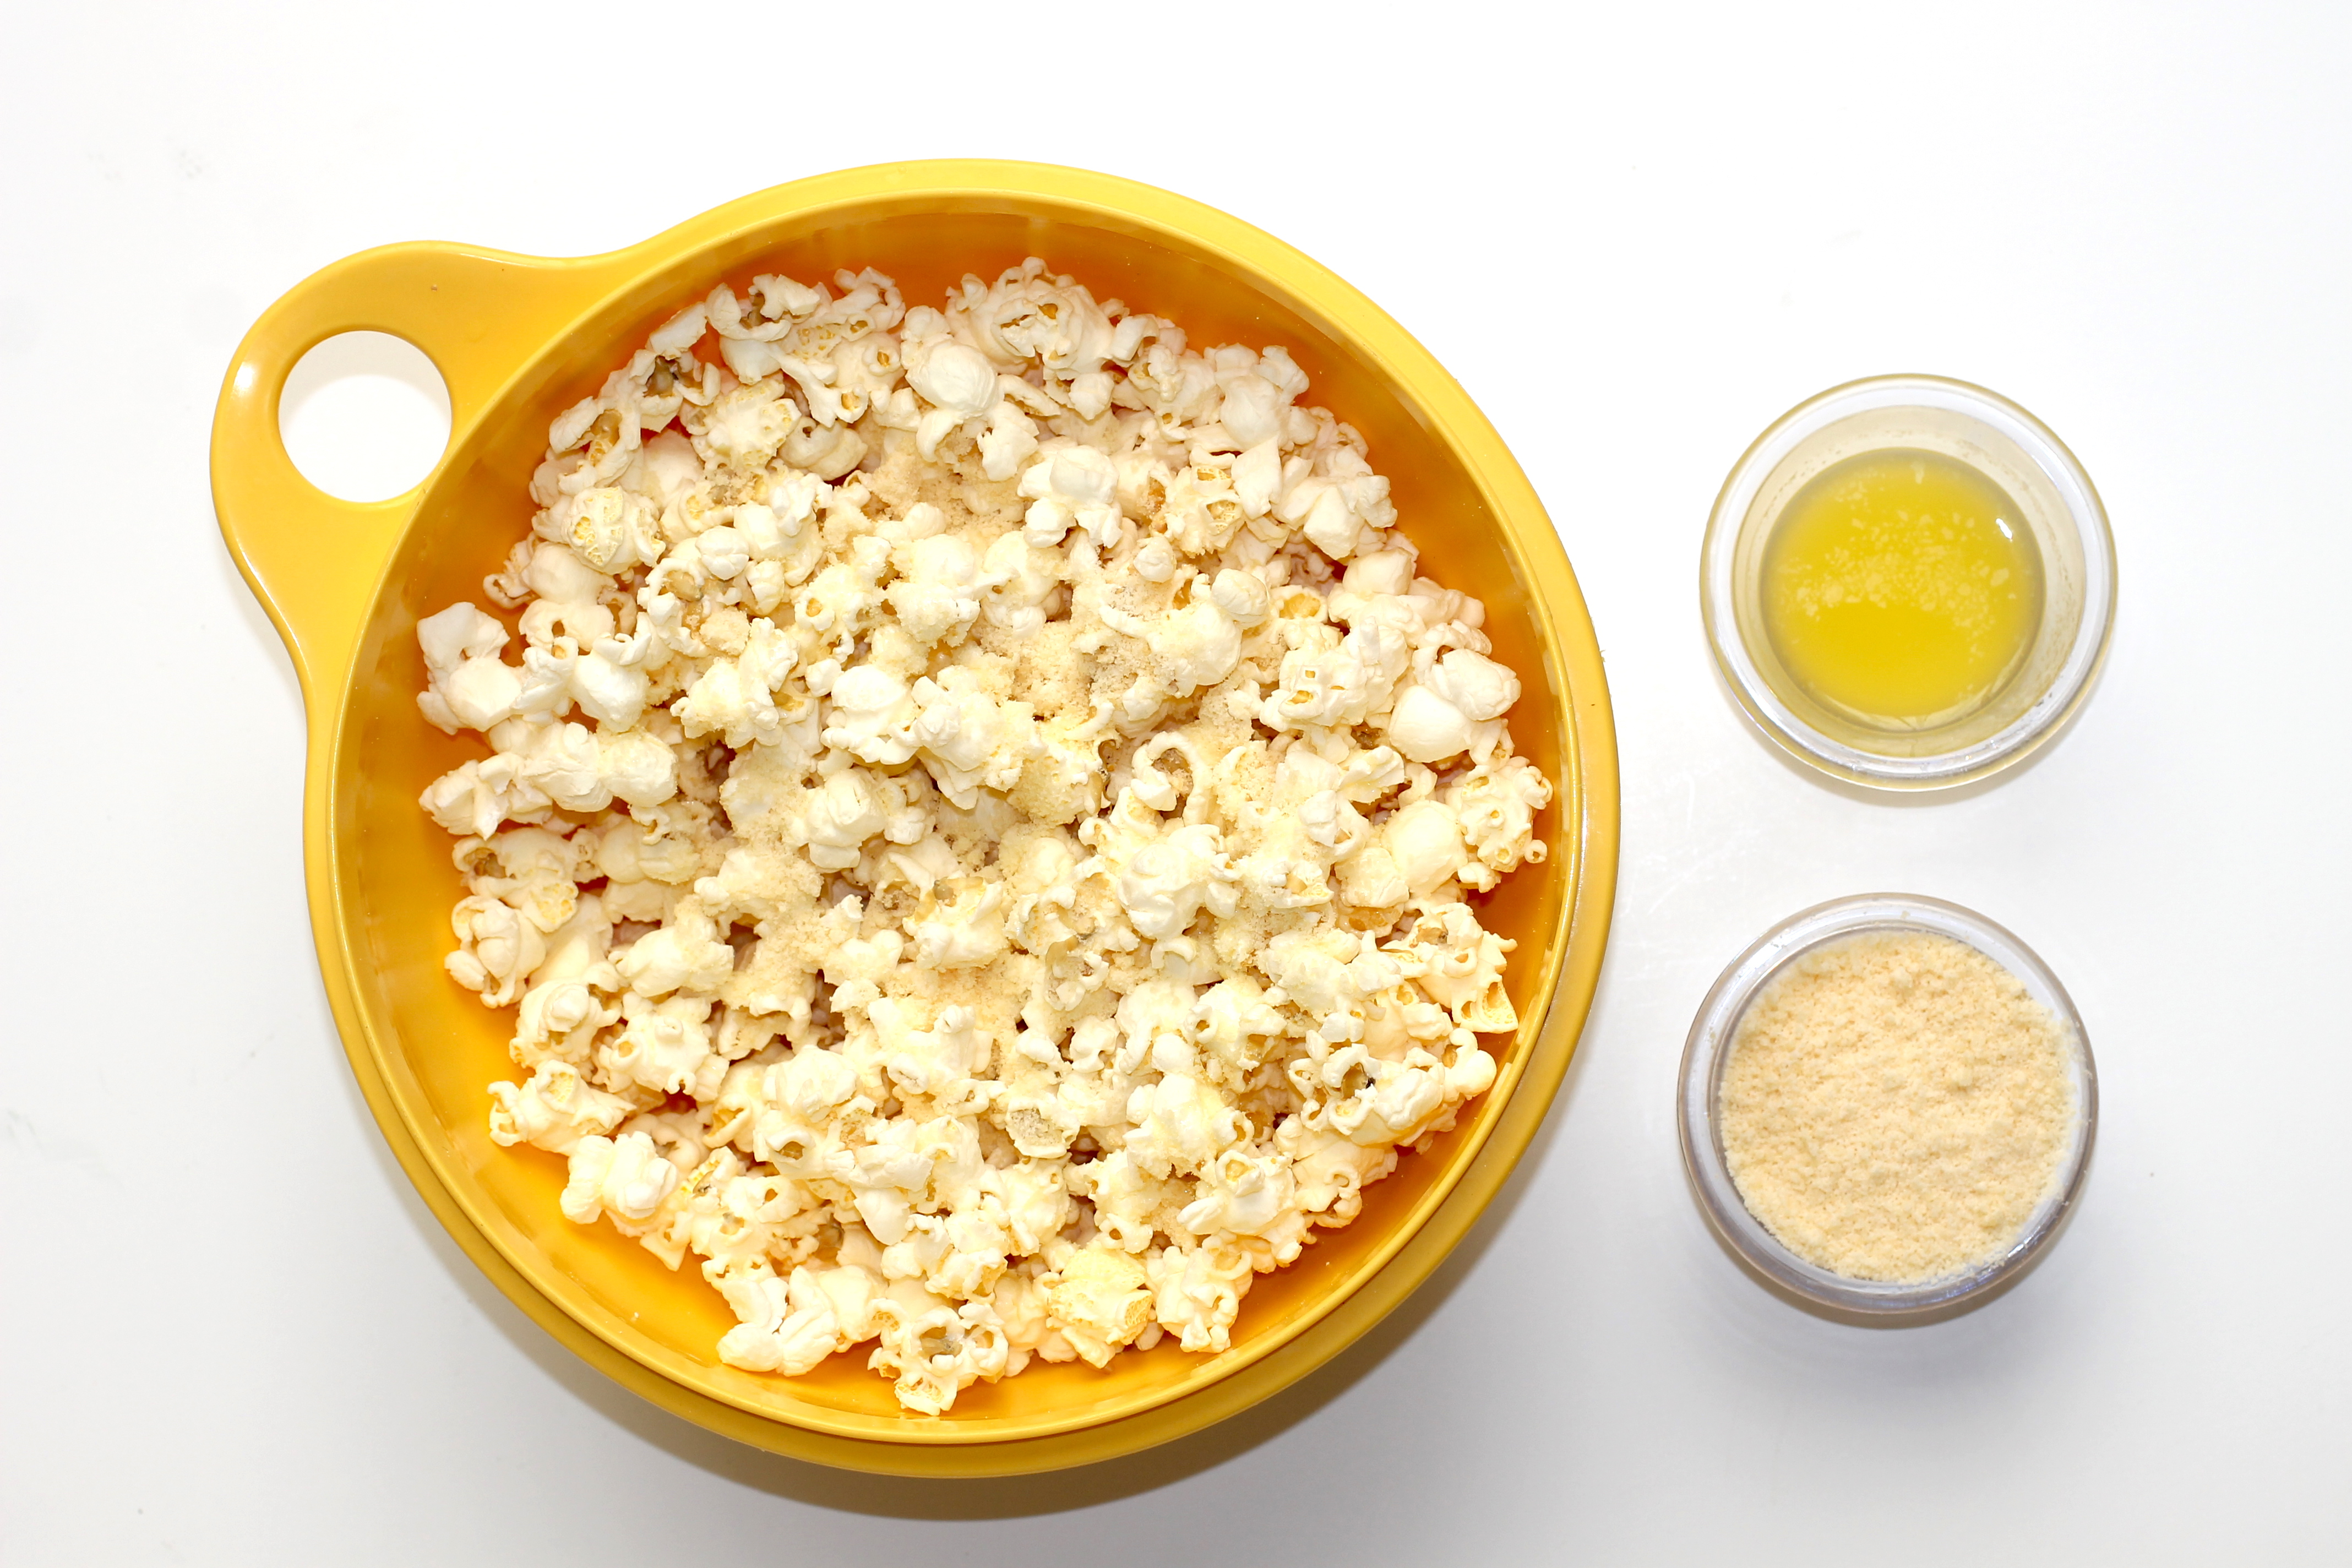 1-step-1-copyfathers-day-popcorn-recipes-handmadebykelly.com-onlinelabels.com_-1